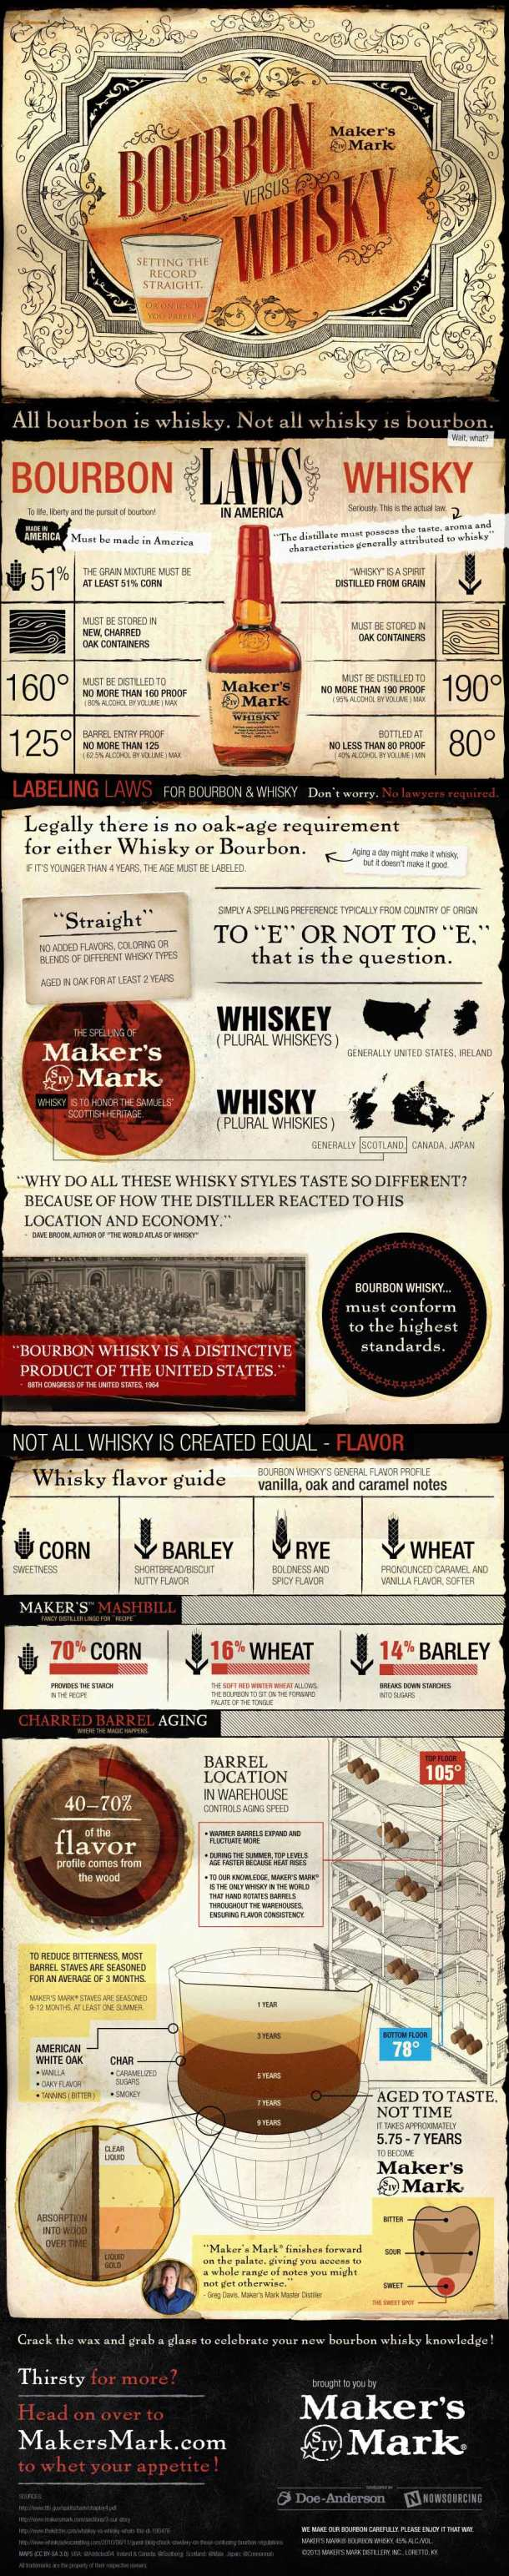 bourbon-vs-whisky-setting-the-record-straight_52580c53b7c04